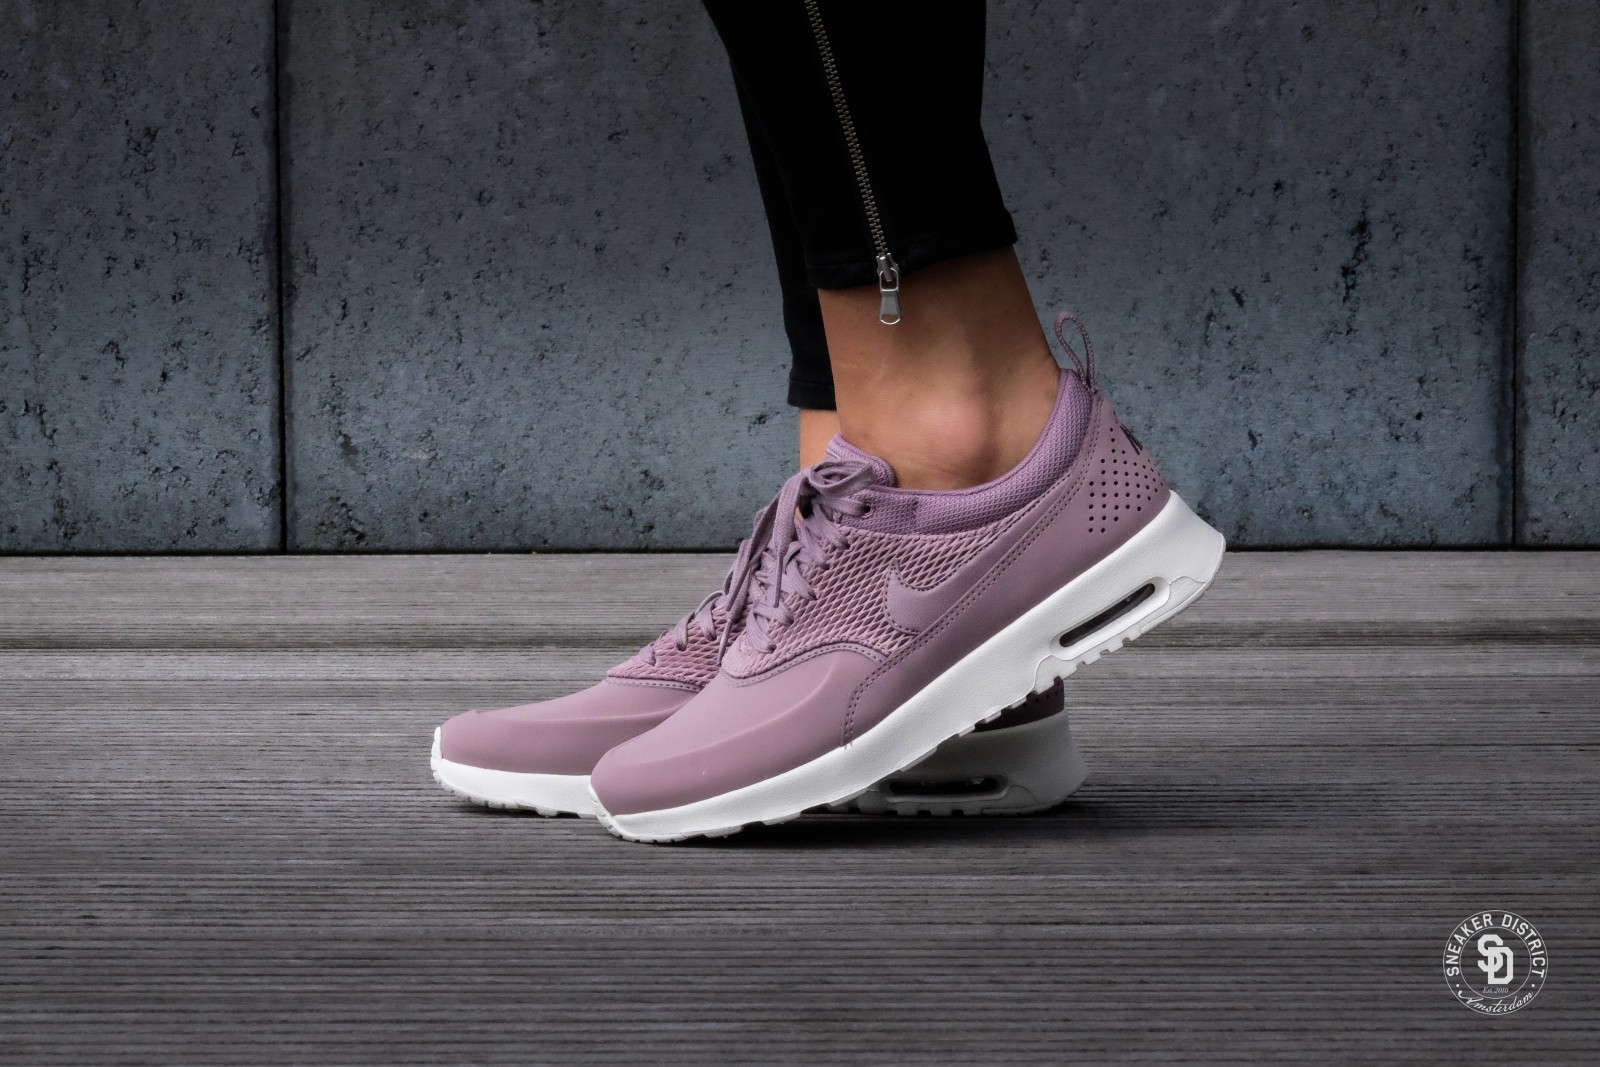 Nike Women's Air Max Thea Ultra Flyknit $149.99 Sneakerhead